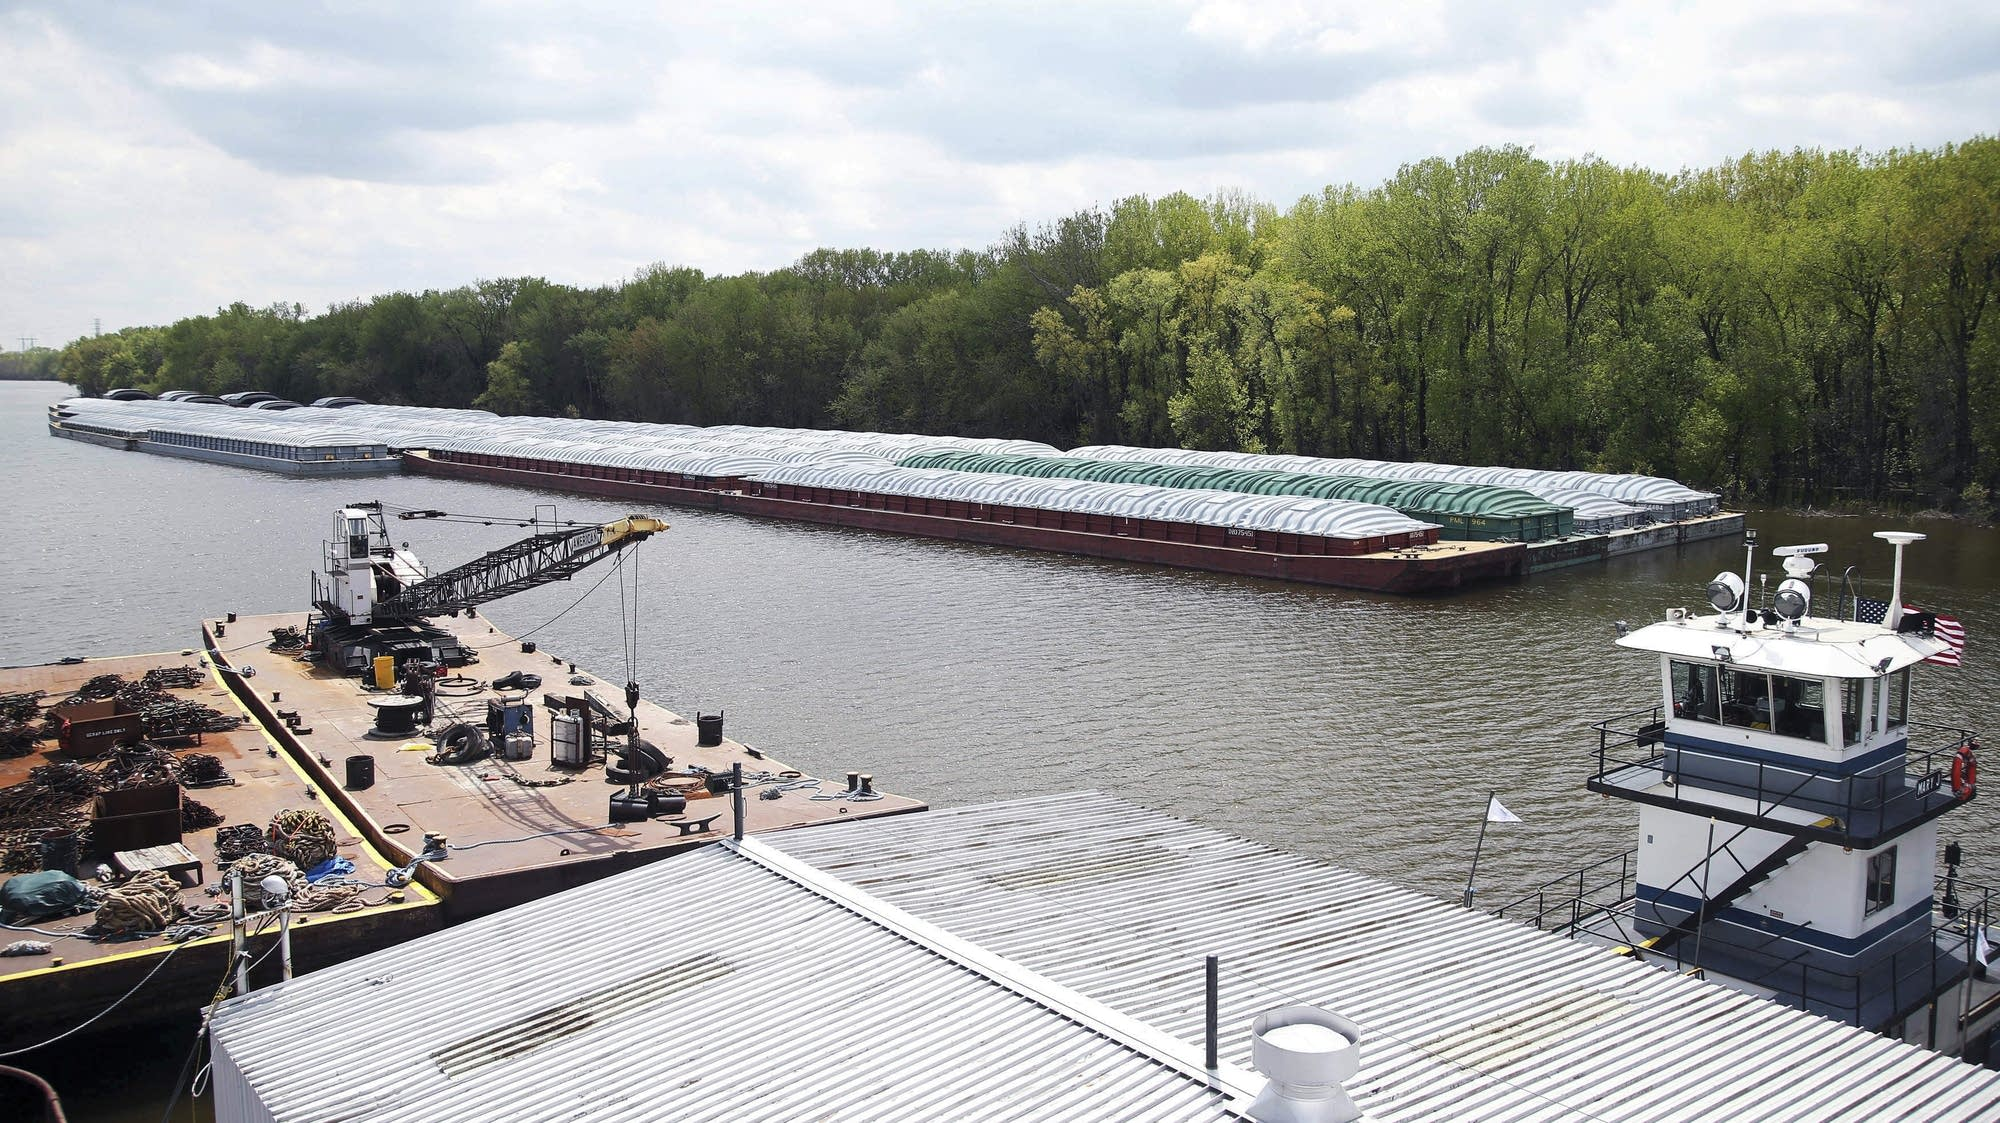 Barges await movement on the Mississippi River in St. Paul